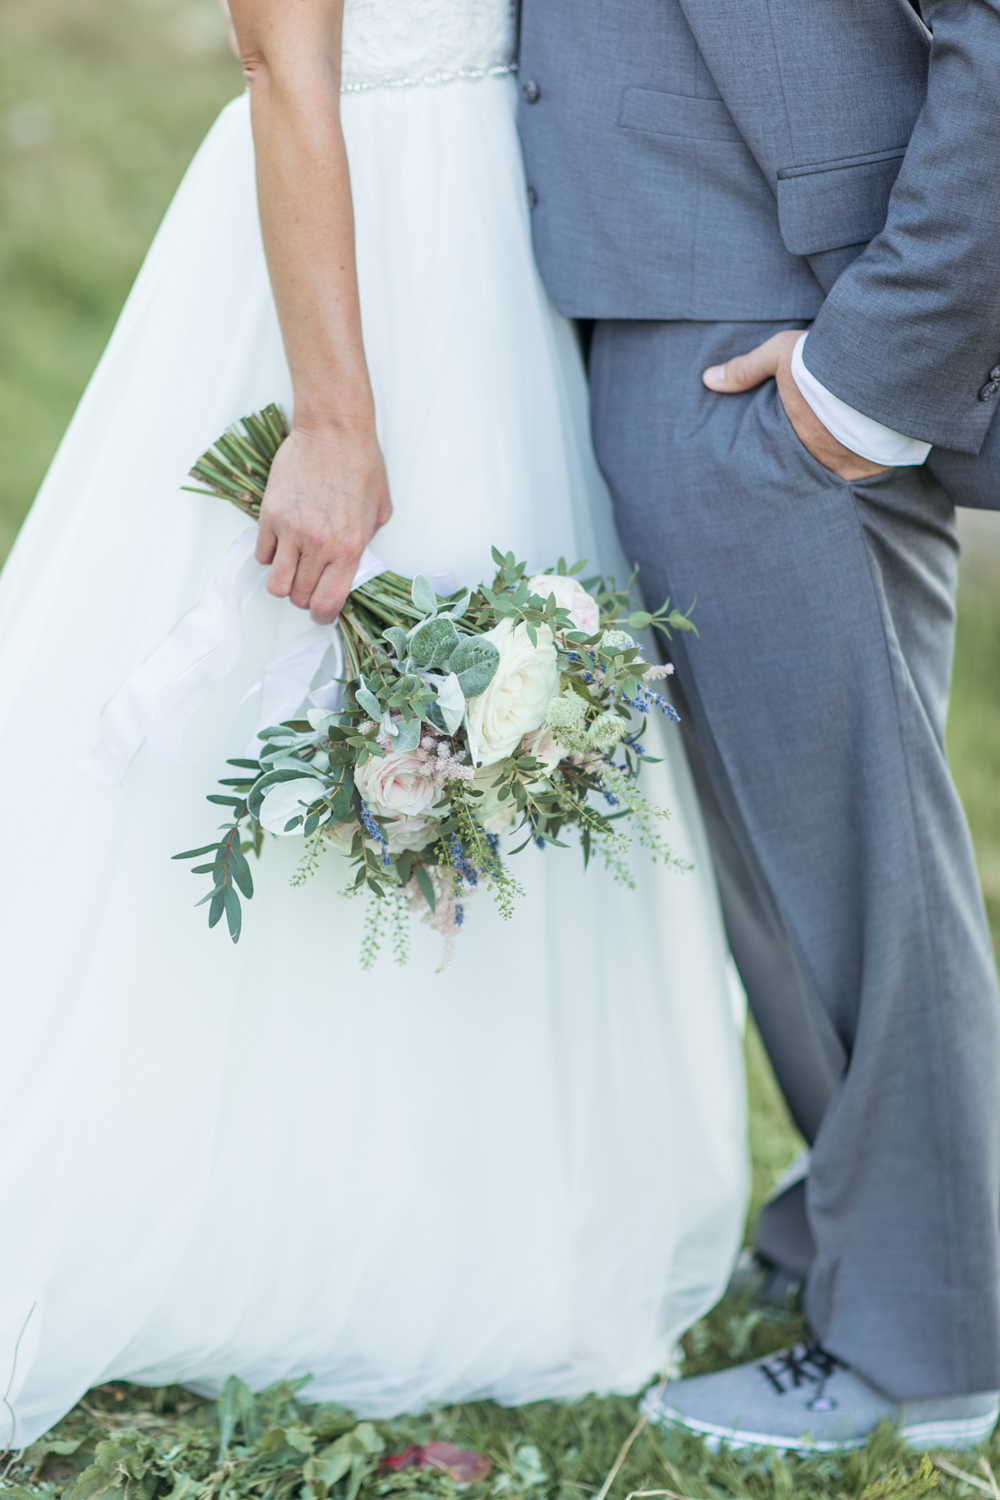 bride holding her loose bridal bouquet agains a tulle skirt of a wedding dress